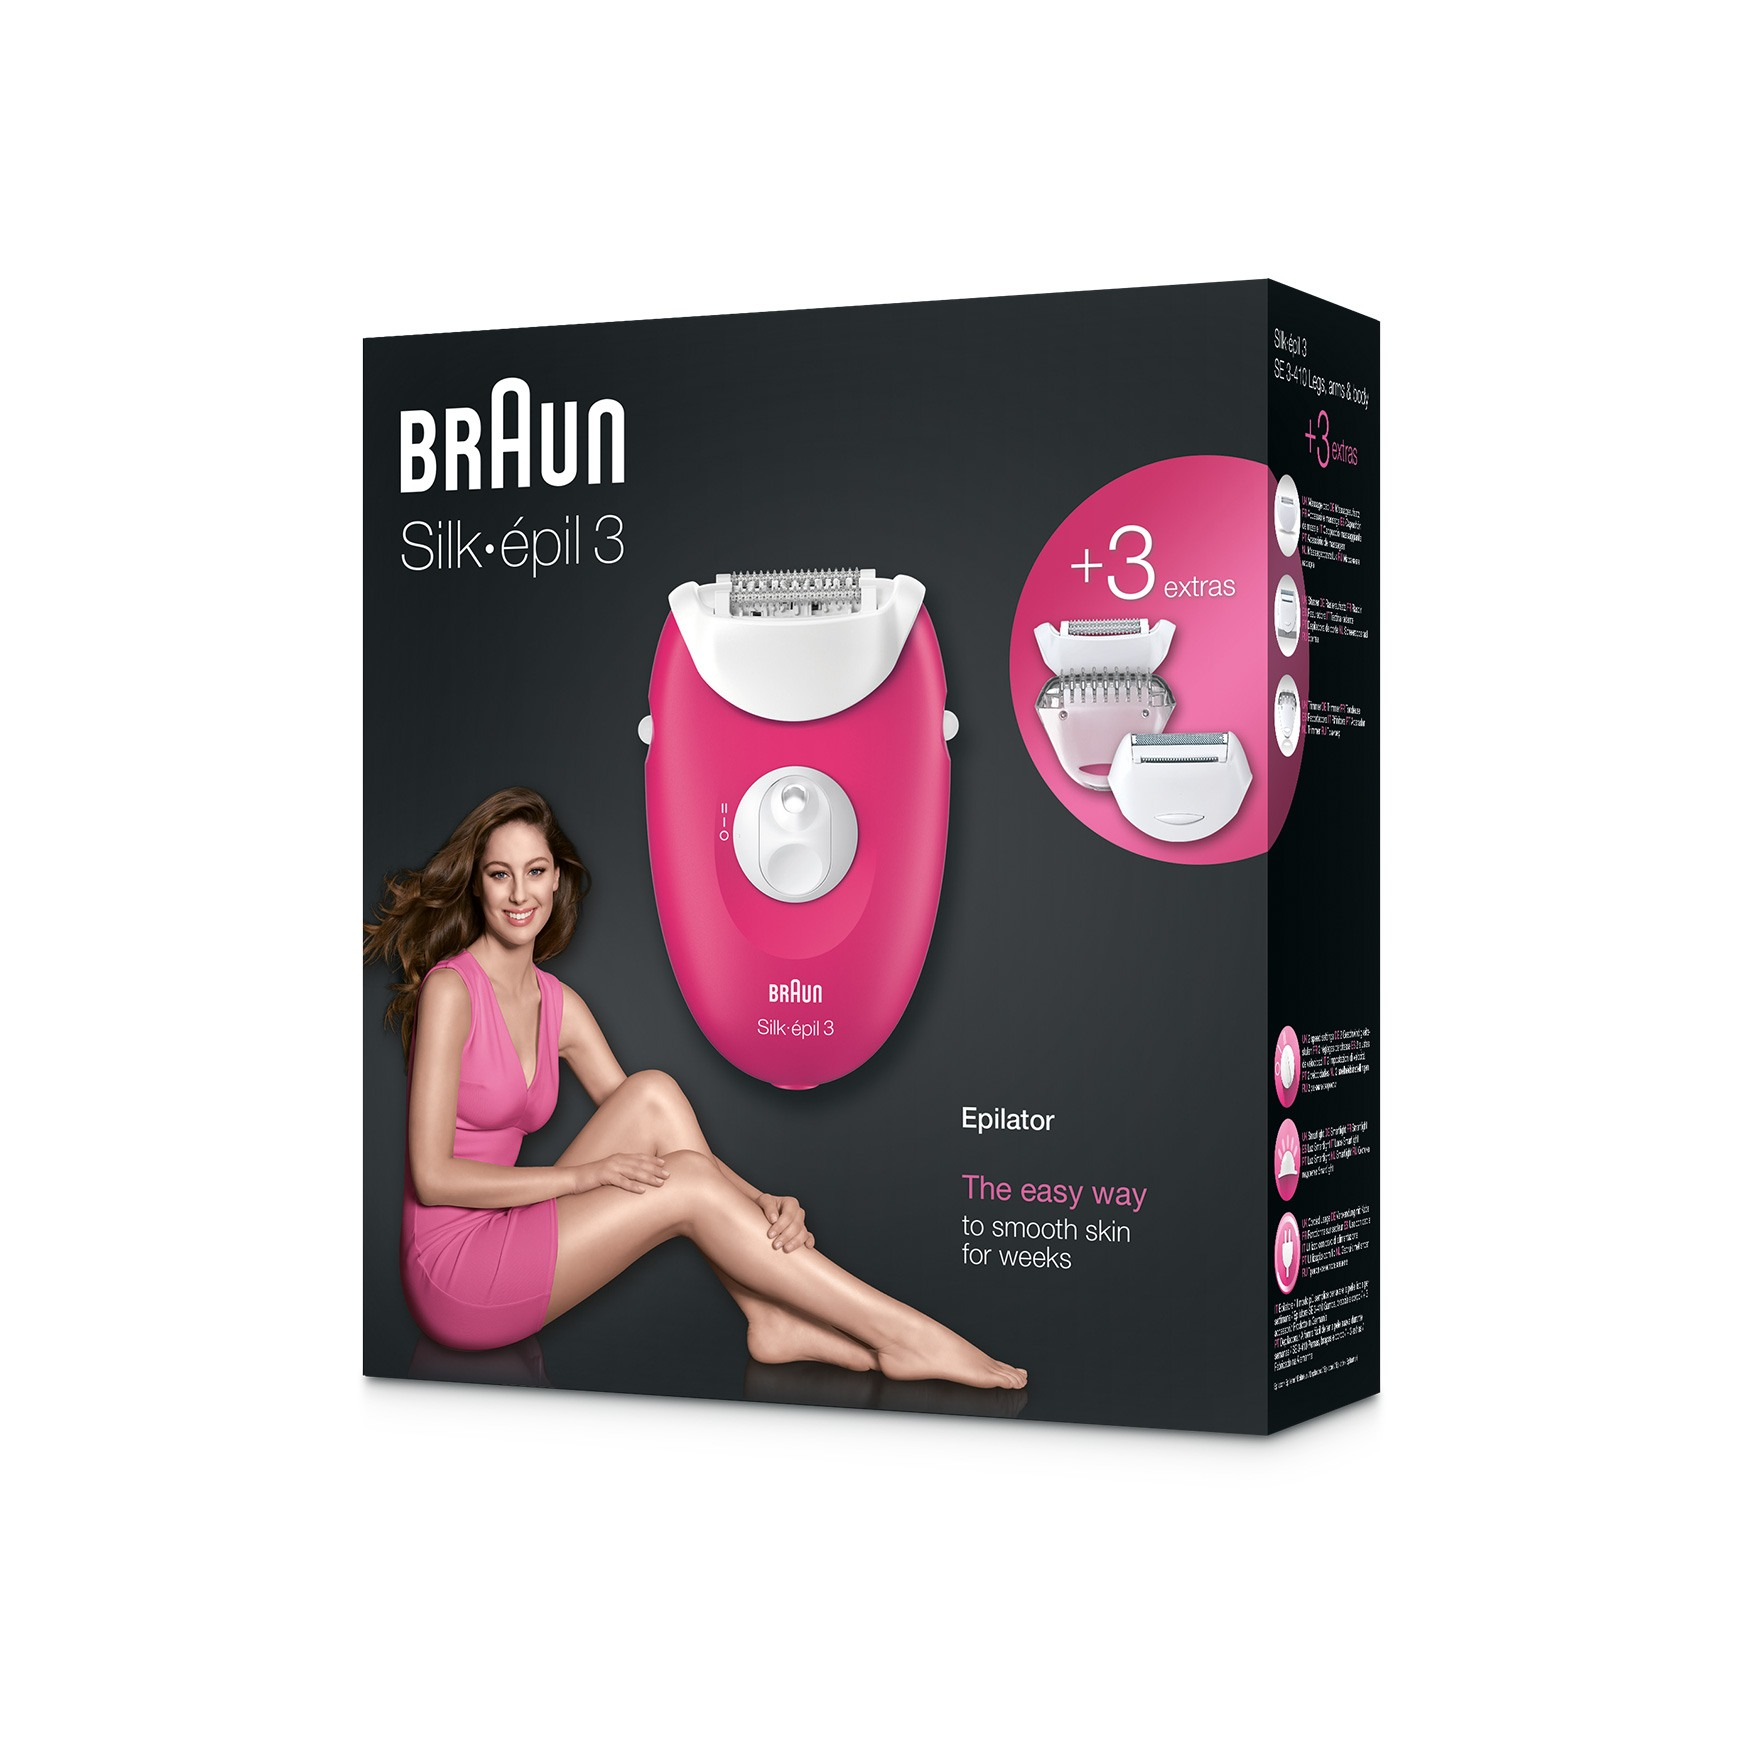 Silk-épil 3 3-410 epilator package